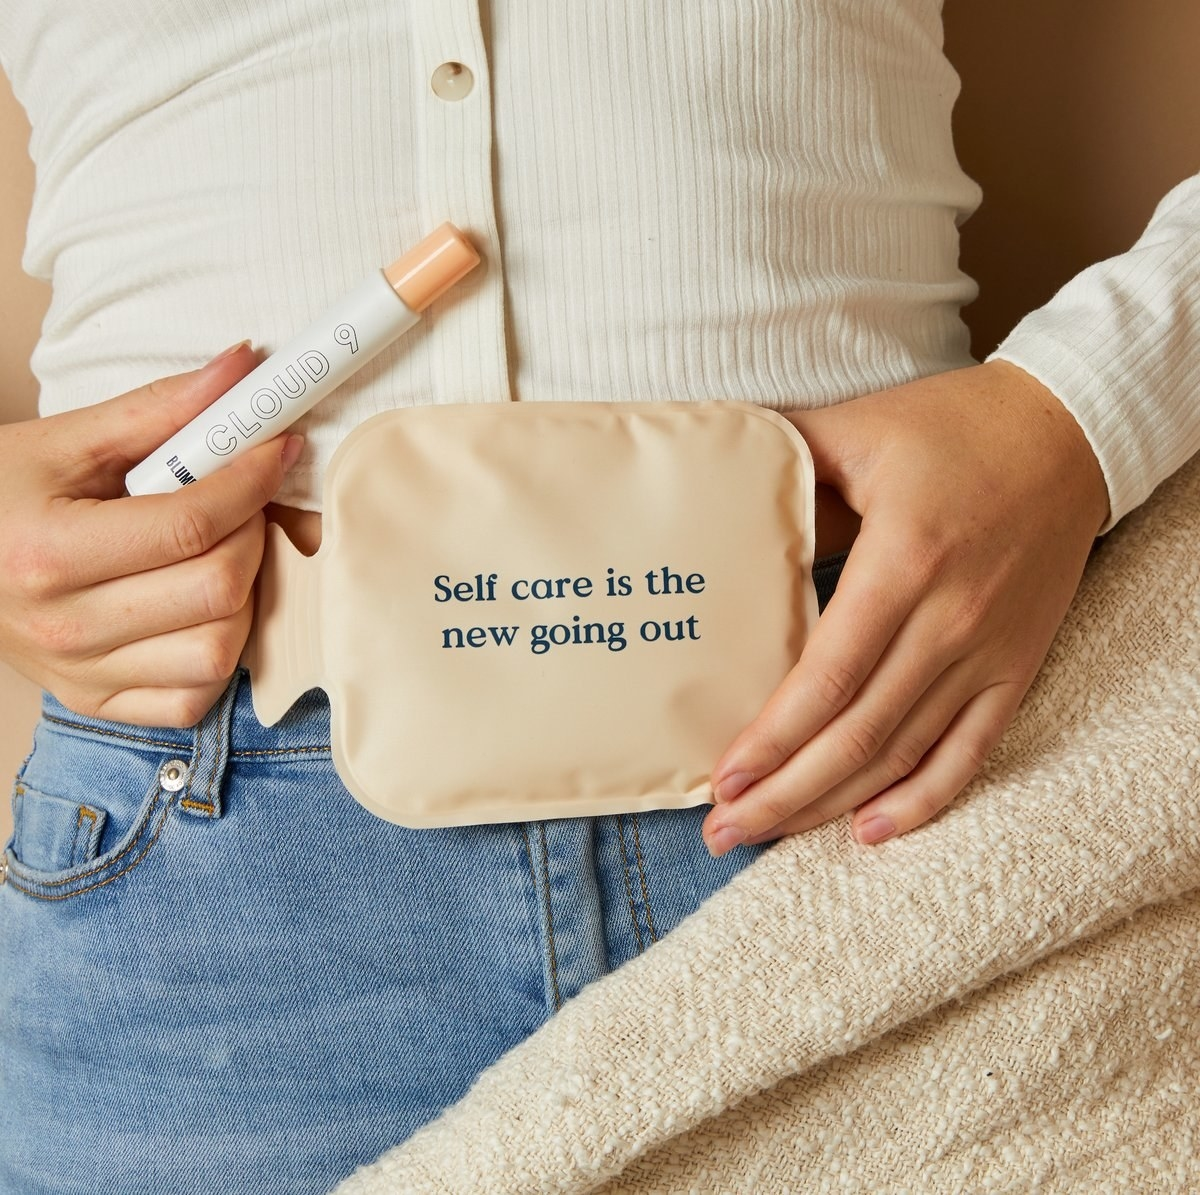 """Model holds heat-pack that says """"Self care is the new going out"""" and Cloud 9 essential oil blend bottle"""